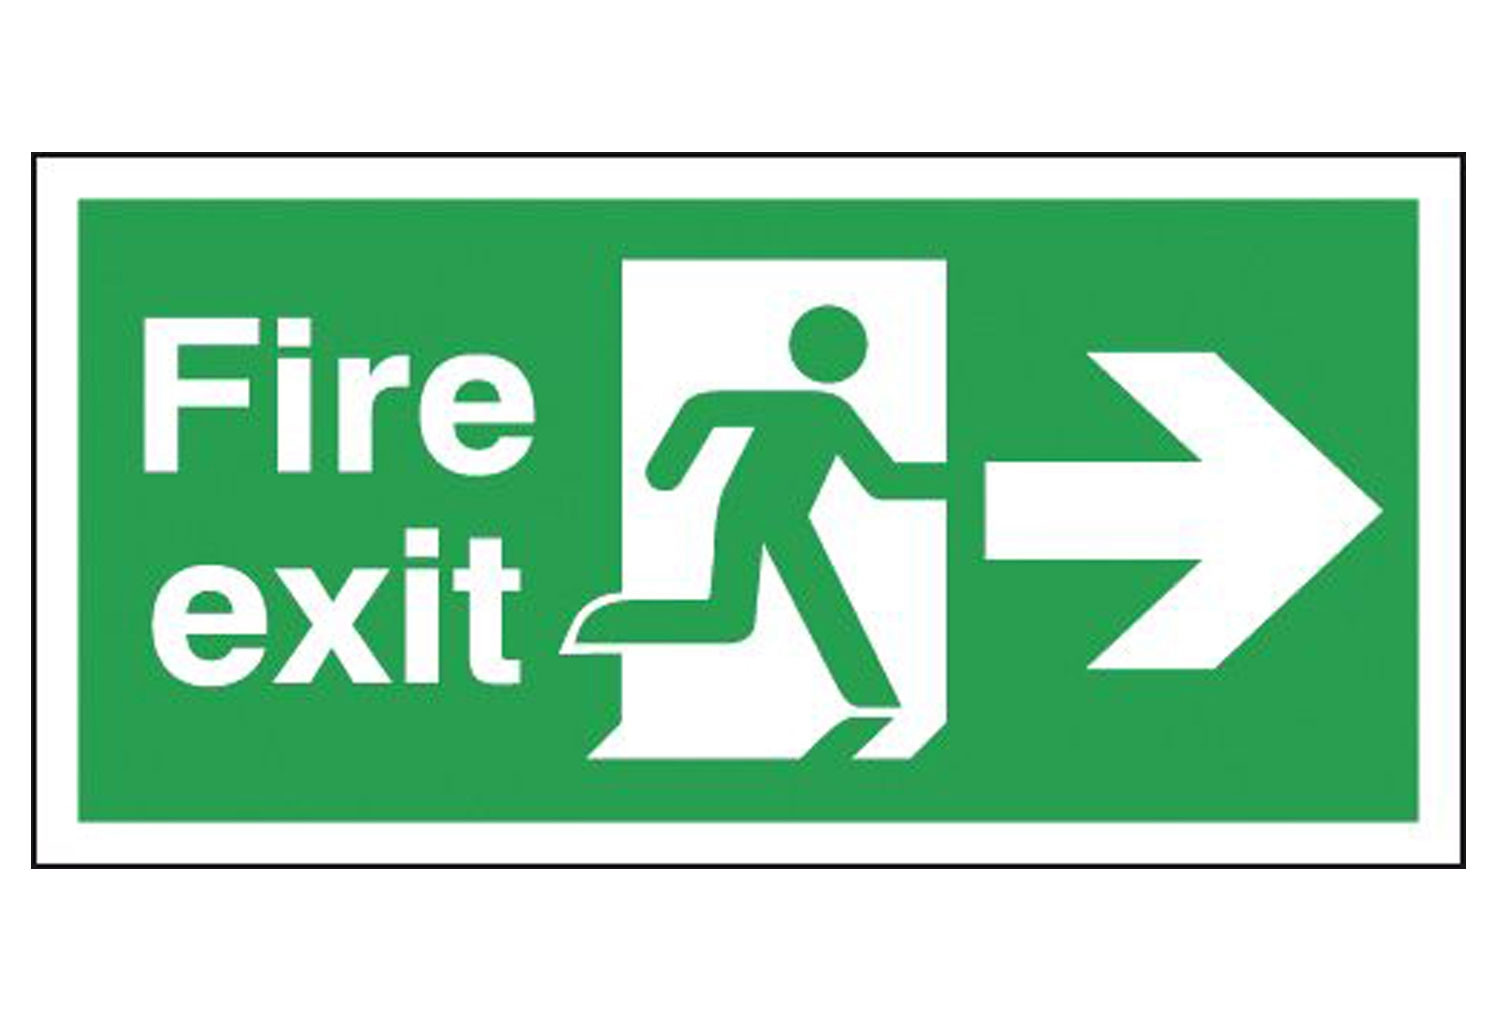 Fire Exit Running Man Arrow Right Self Extinguishing Sign